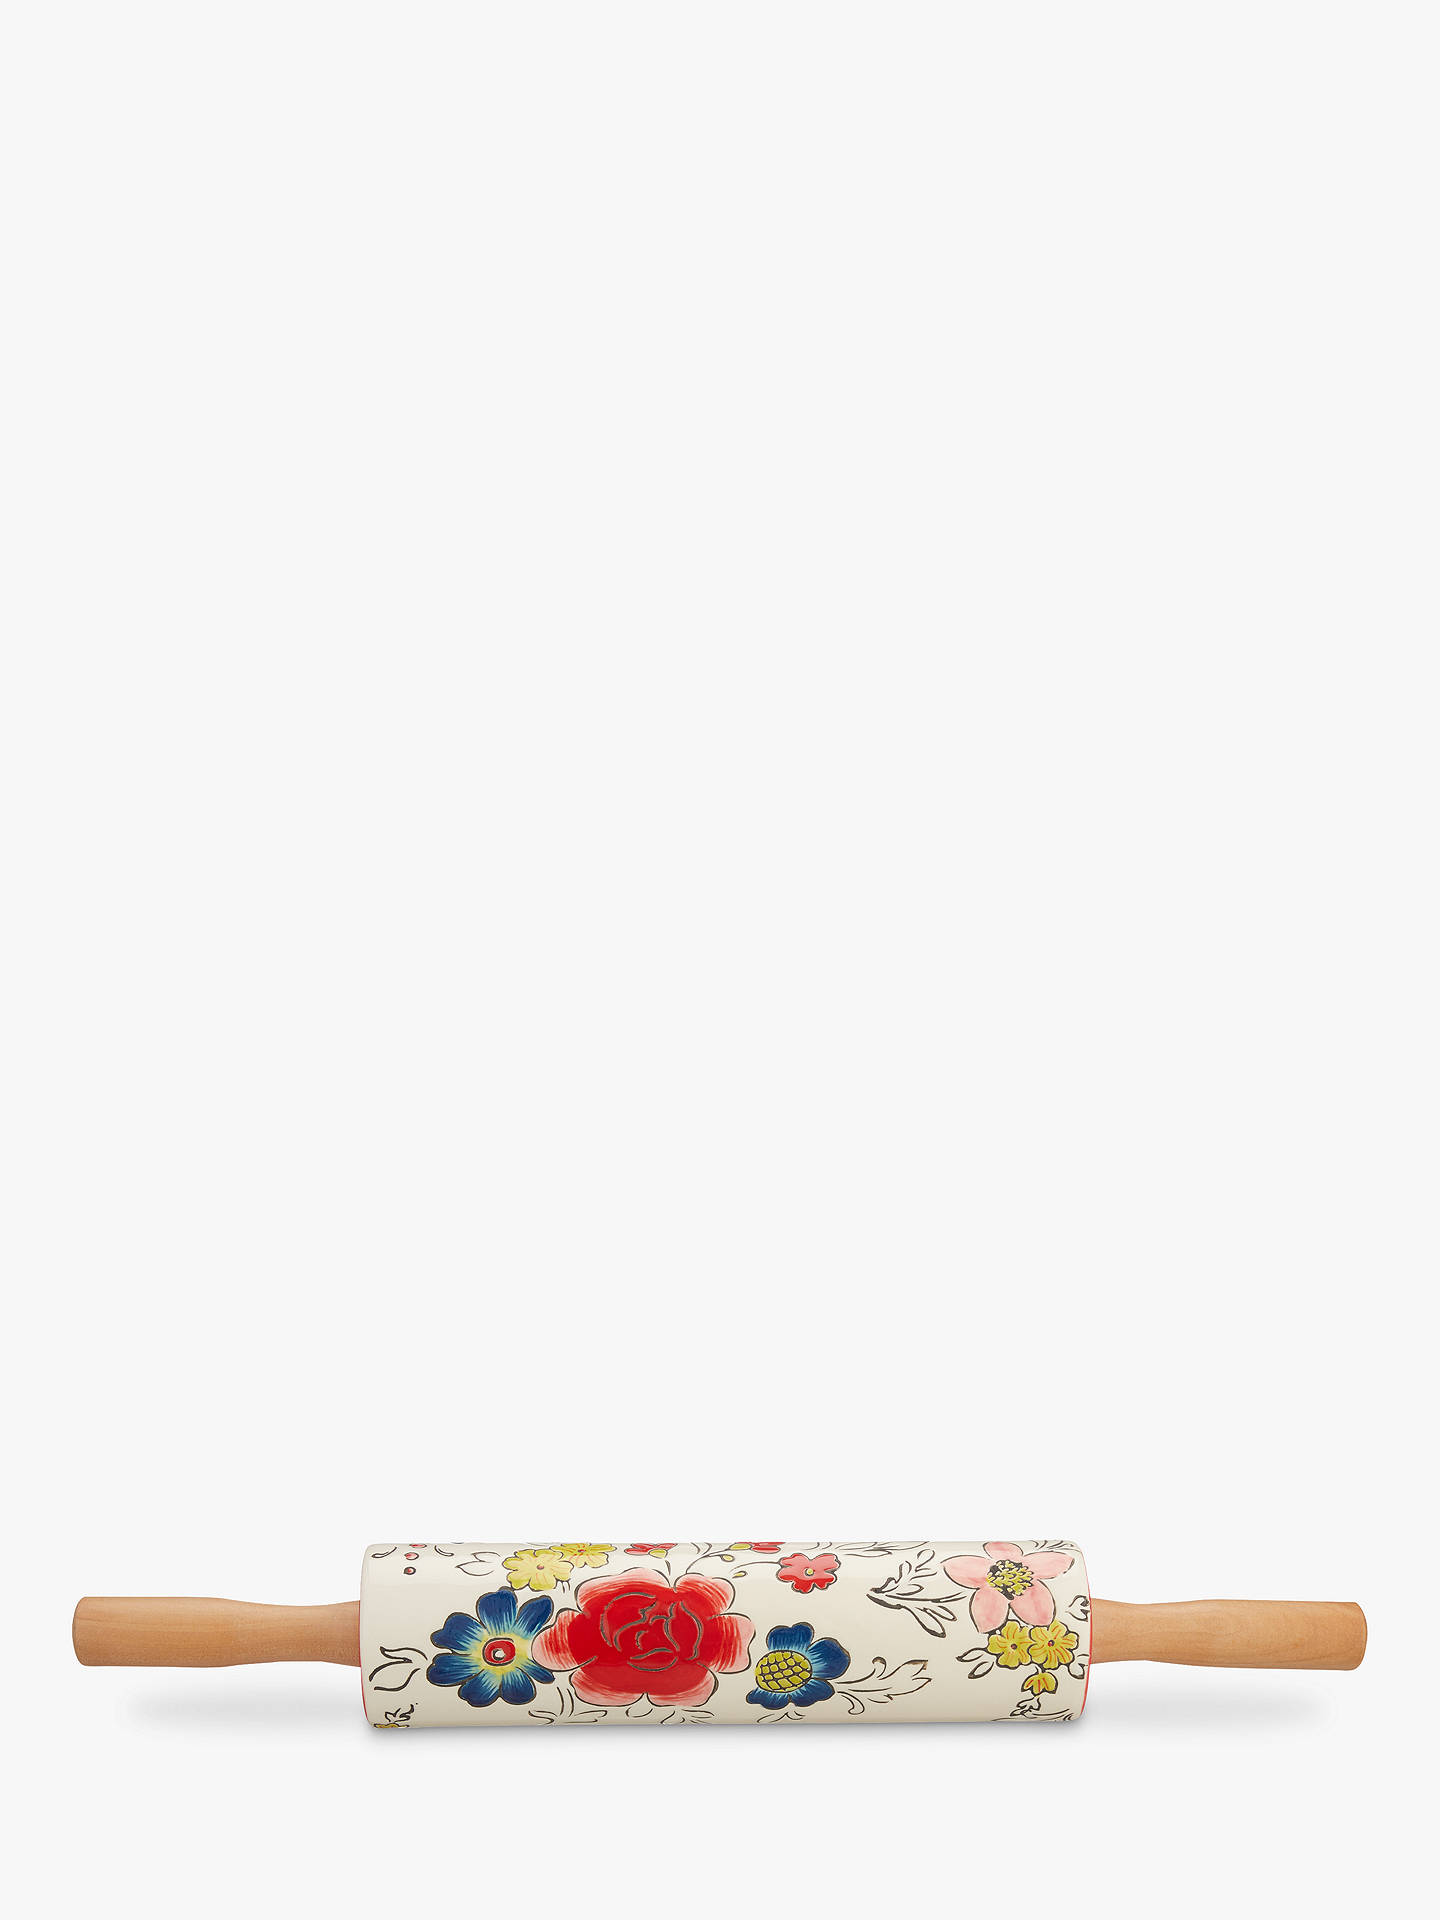 408a655a21 BuyMolly Hatch Stoneware Flower Rolling Pin